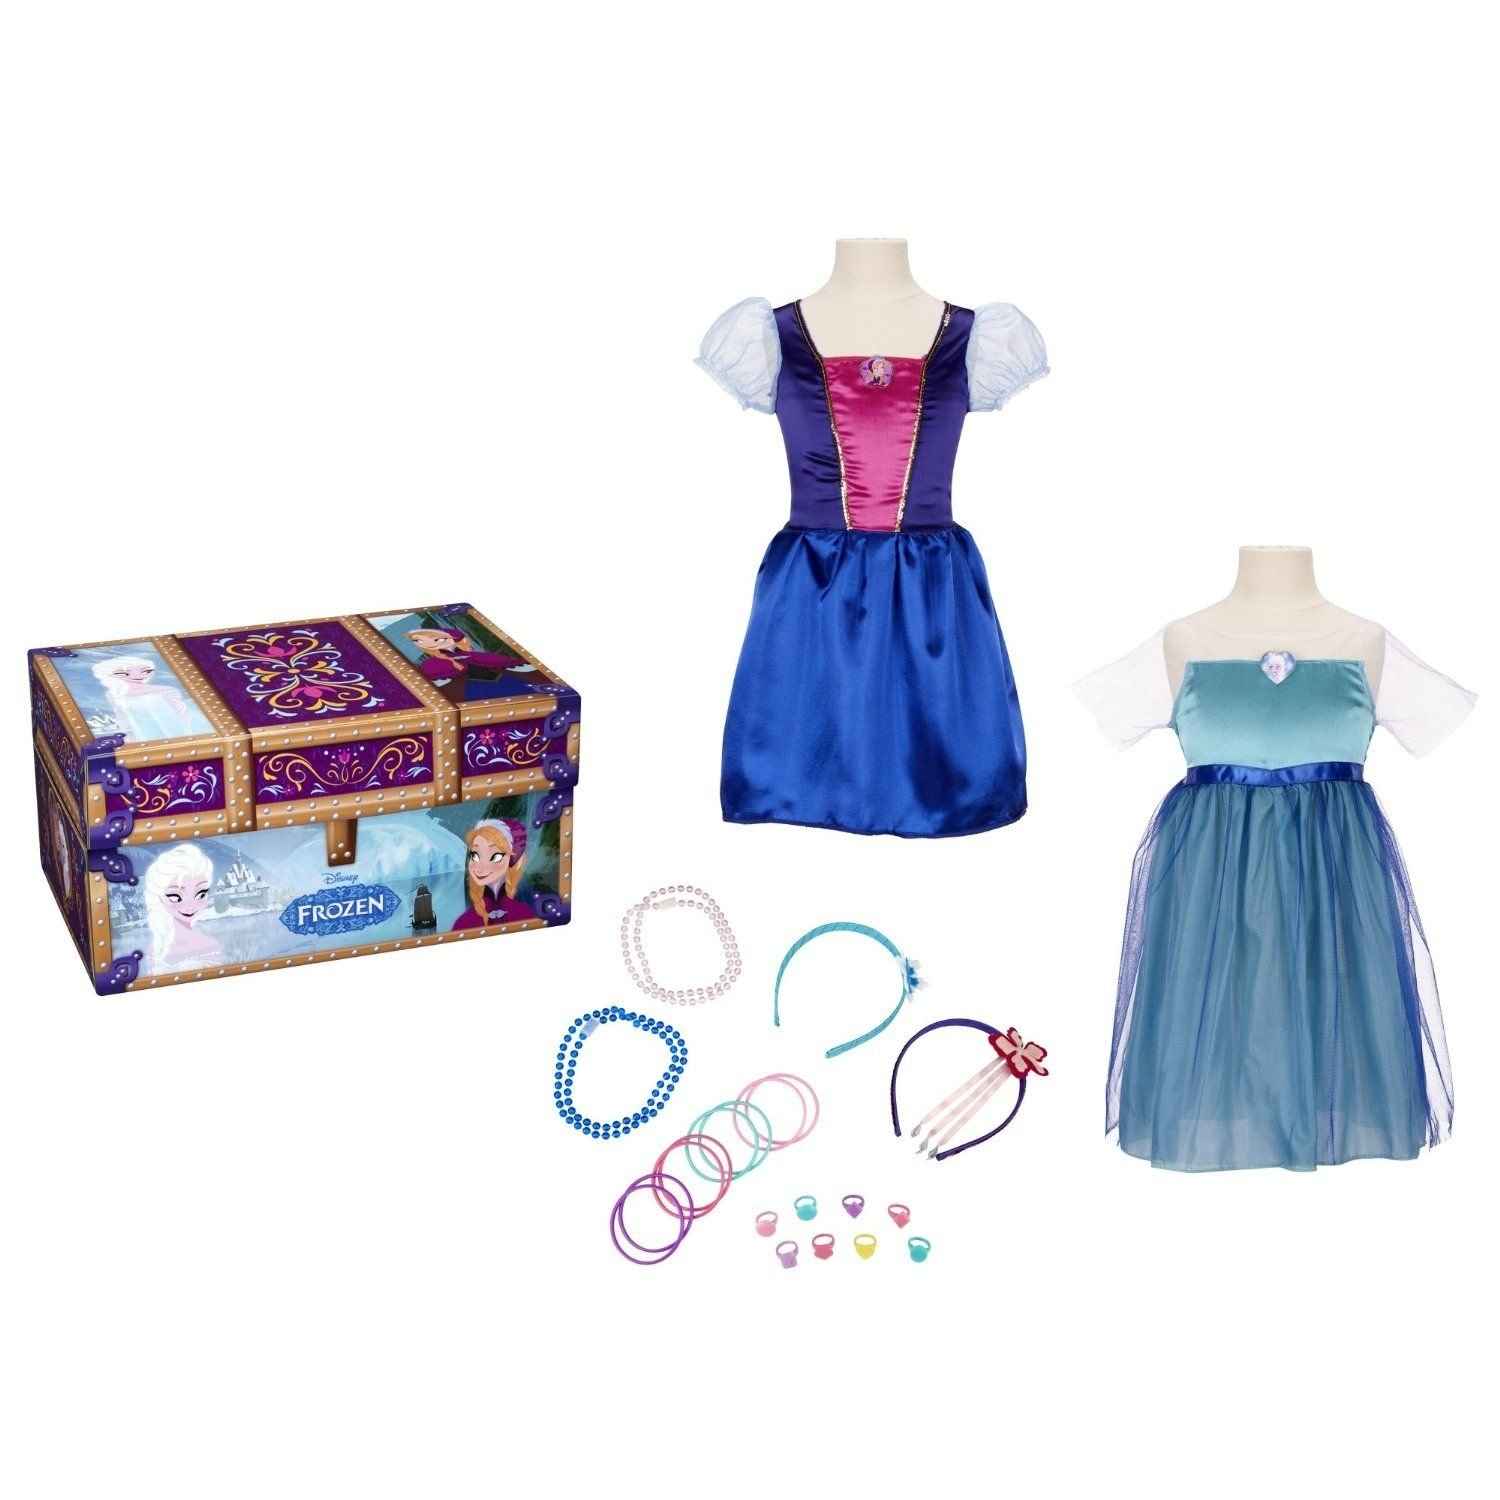 10 Famous Gift Ideas For 4 Yr Old Girl best gifts for 4 year old girls in 2017 disney frozen and disney 2020